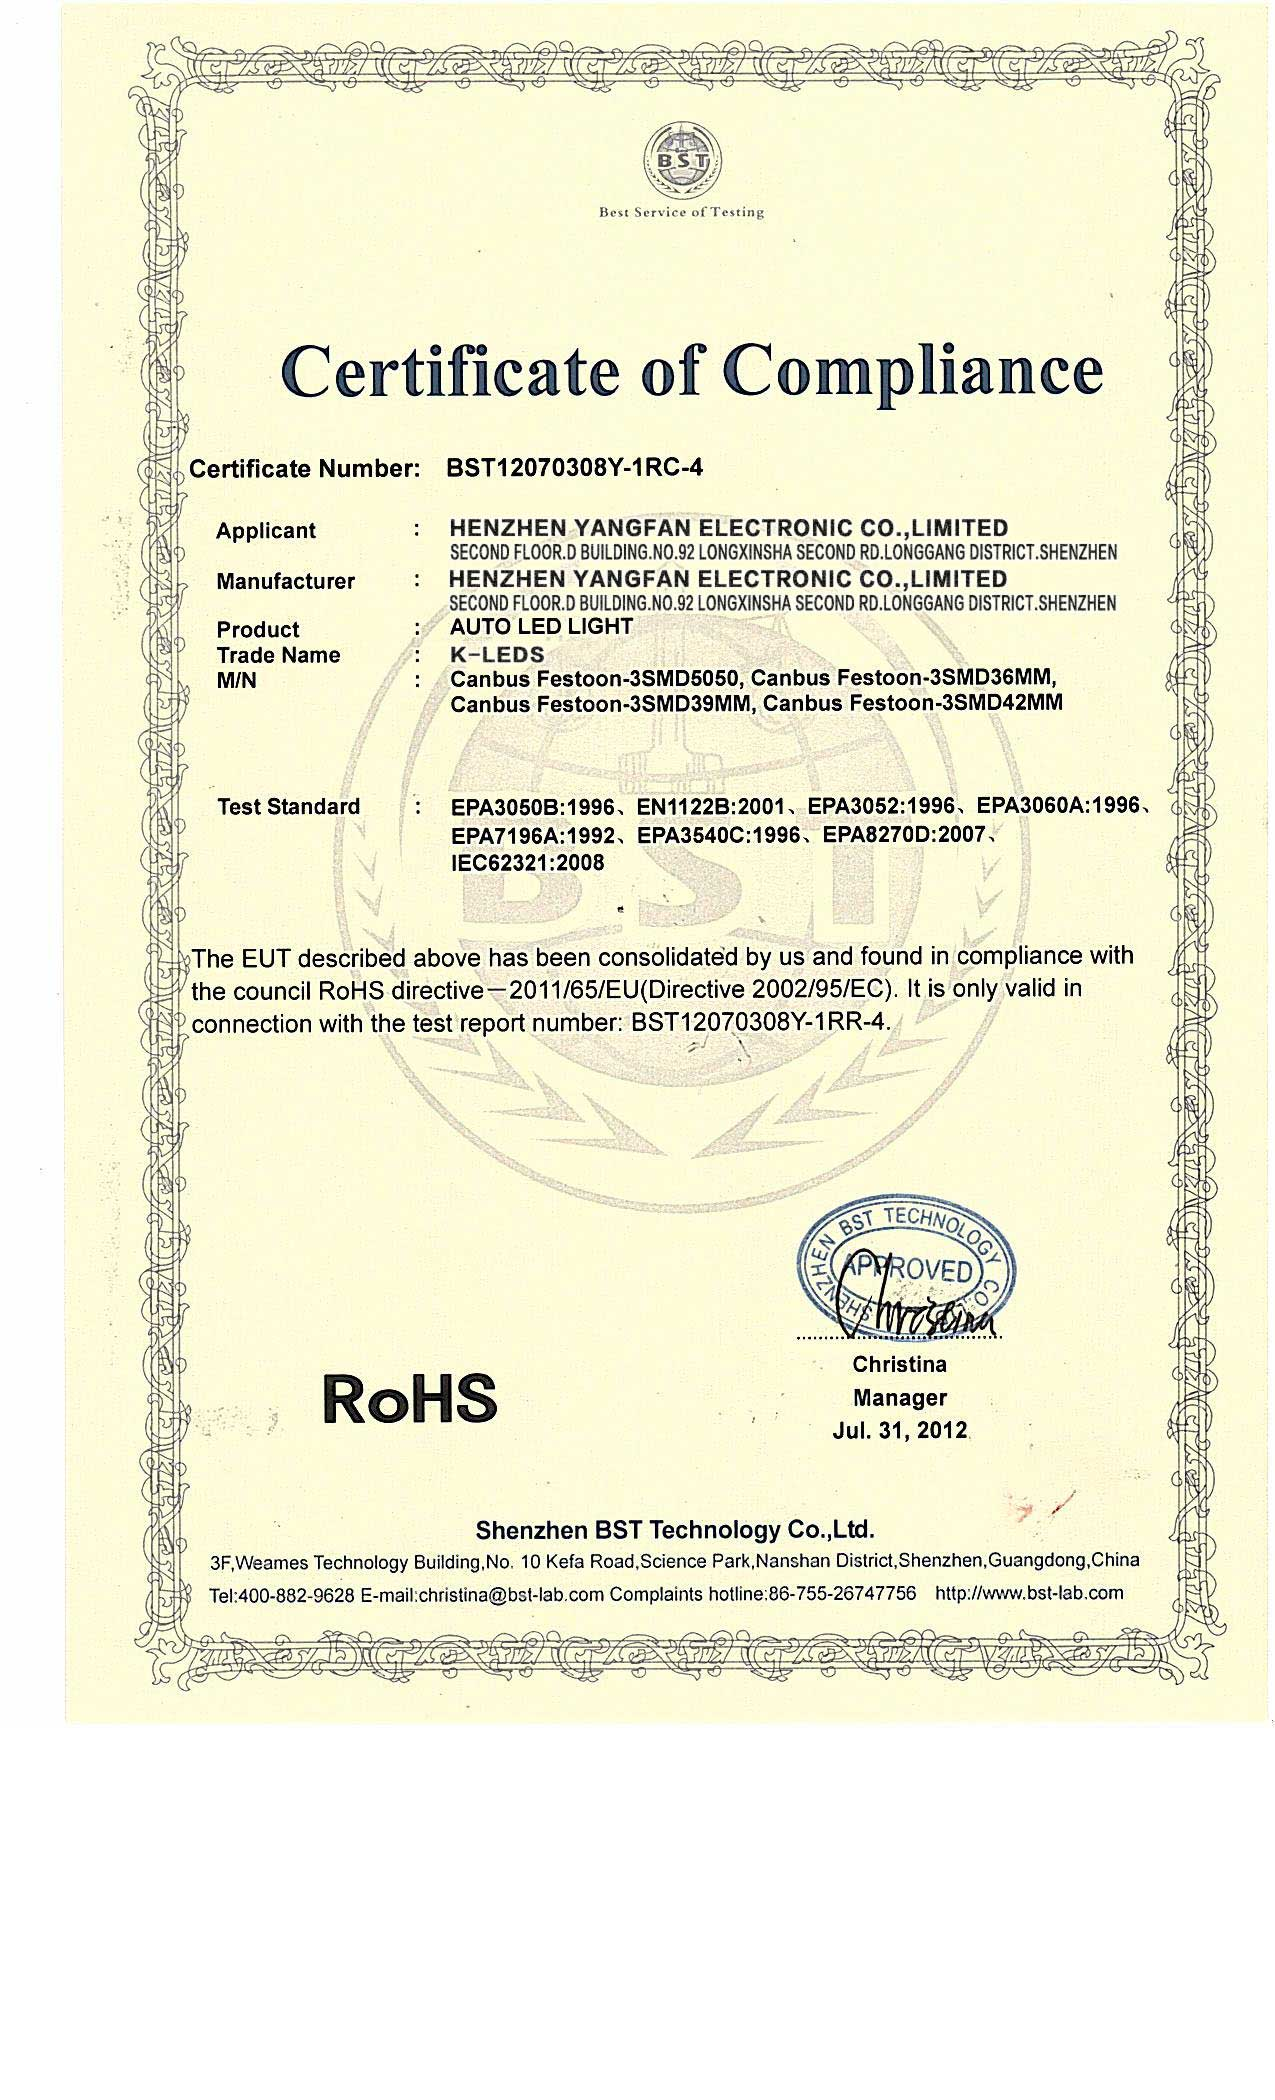 Rohs Certificate of car led light